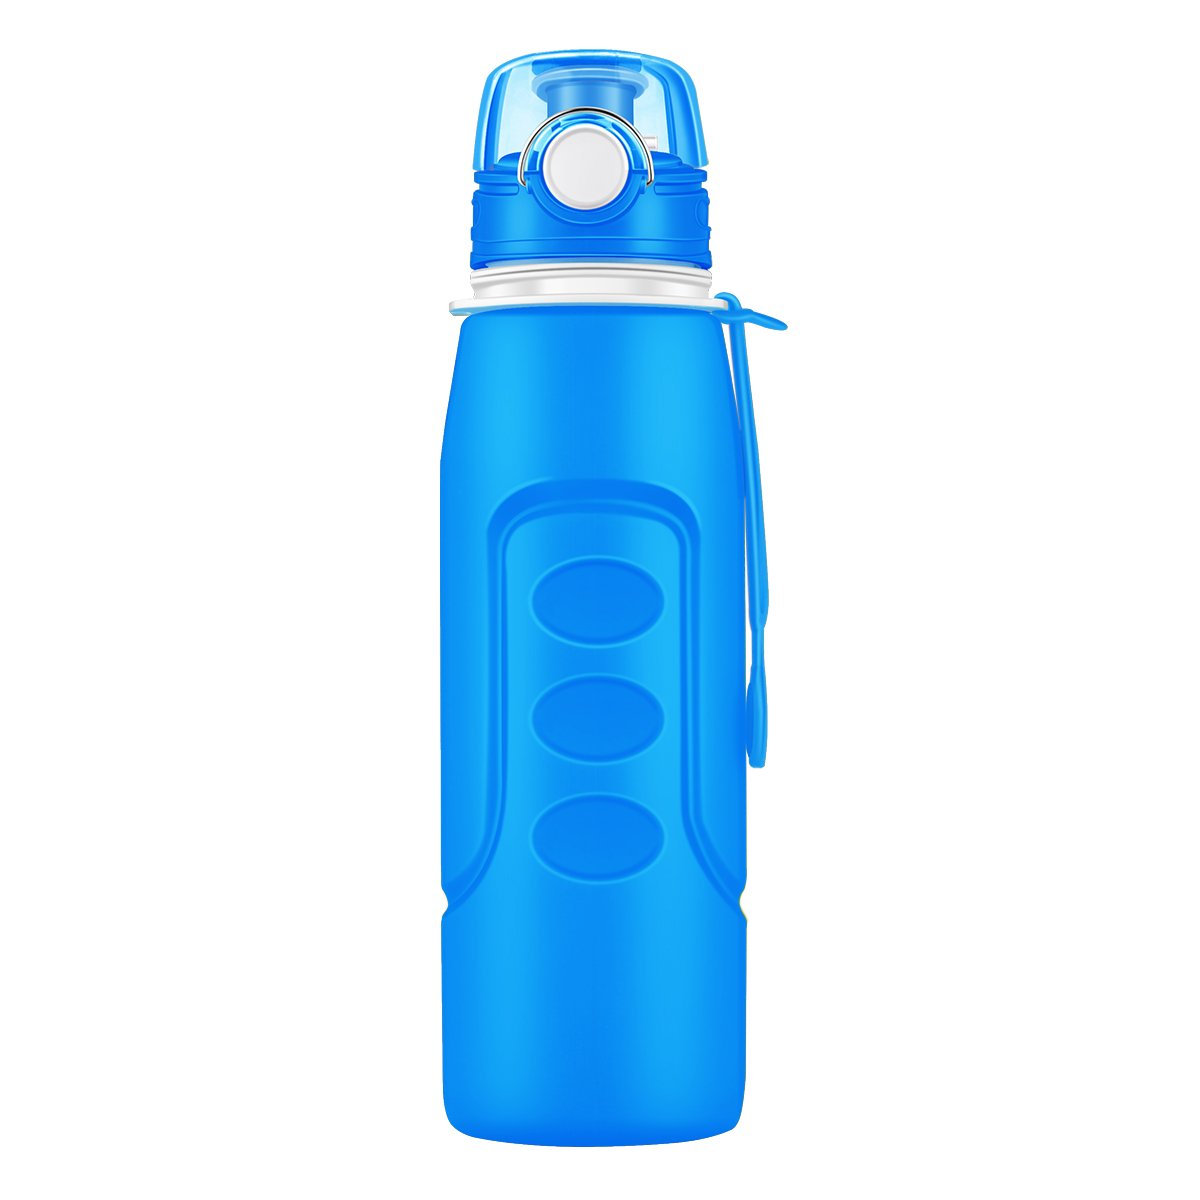 Sports Water Bottle-Rottay 1000ML/1Liter(32oz)-Collapsible &Eco Friendly & BPA-Free& Leak-Proof Foldable Silicone Water Bottle/Drink Bottle Orange